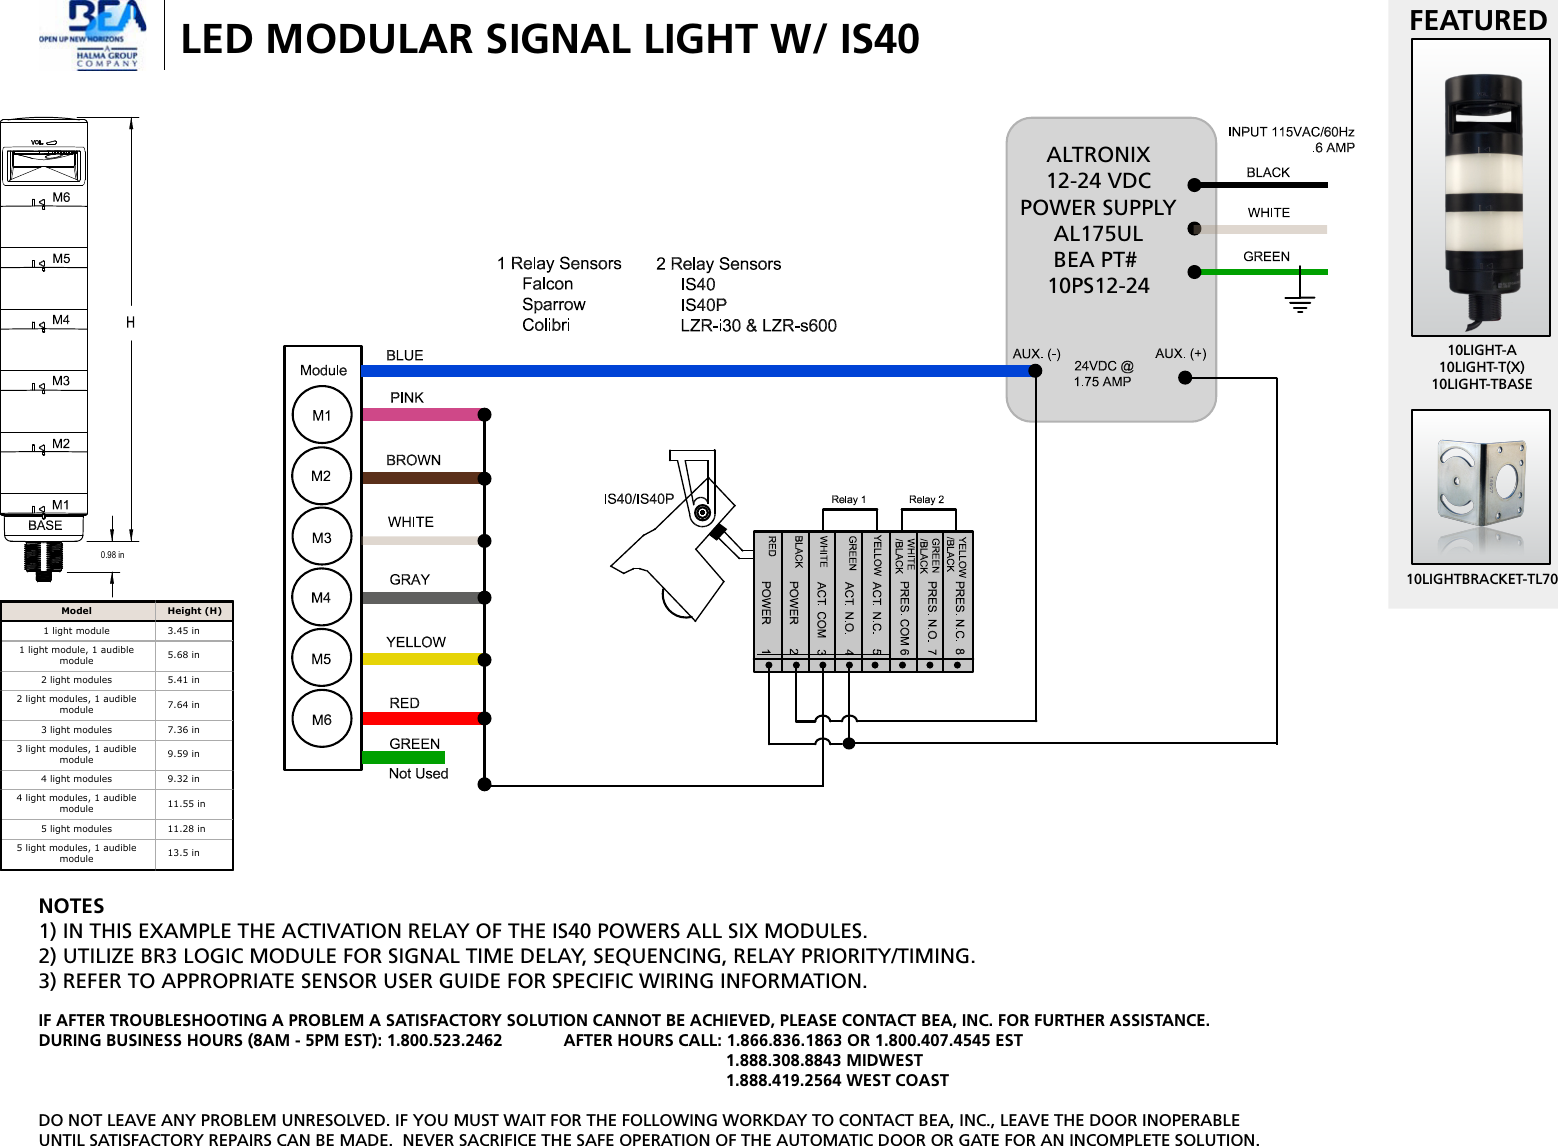 BEA 75.5839.03 BANNER WIRING DIAGRAM LED Signal Column Lights on relay pins, solid state circuit breaker schematics, relay board, relay logic symbols, relay circuit, relay wire schematics, relay coil, ham radio schematics, relay in schematic, relay holder, relay ac, relay box, relay schematic symbol, arduino 5v relays schematics, relay numbers, relay parts, relay lights, relay drawing, relay electrical,